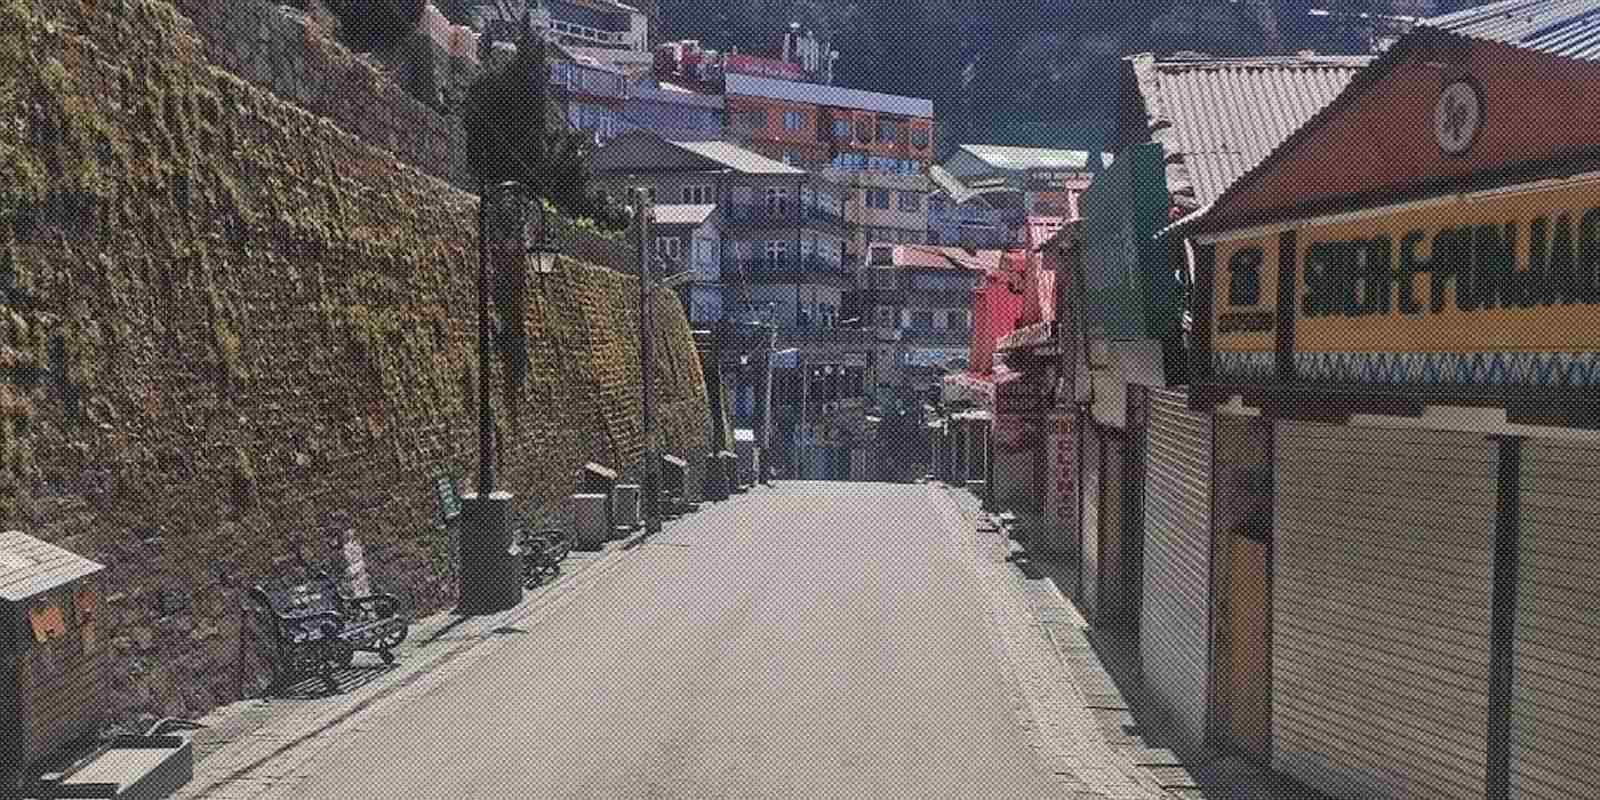 Curfew relaxation in shimla district